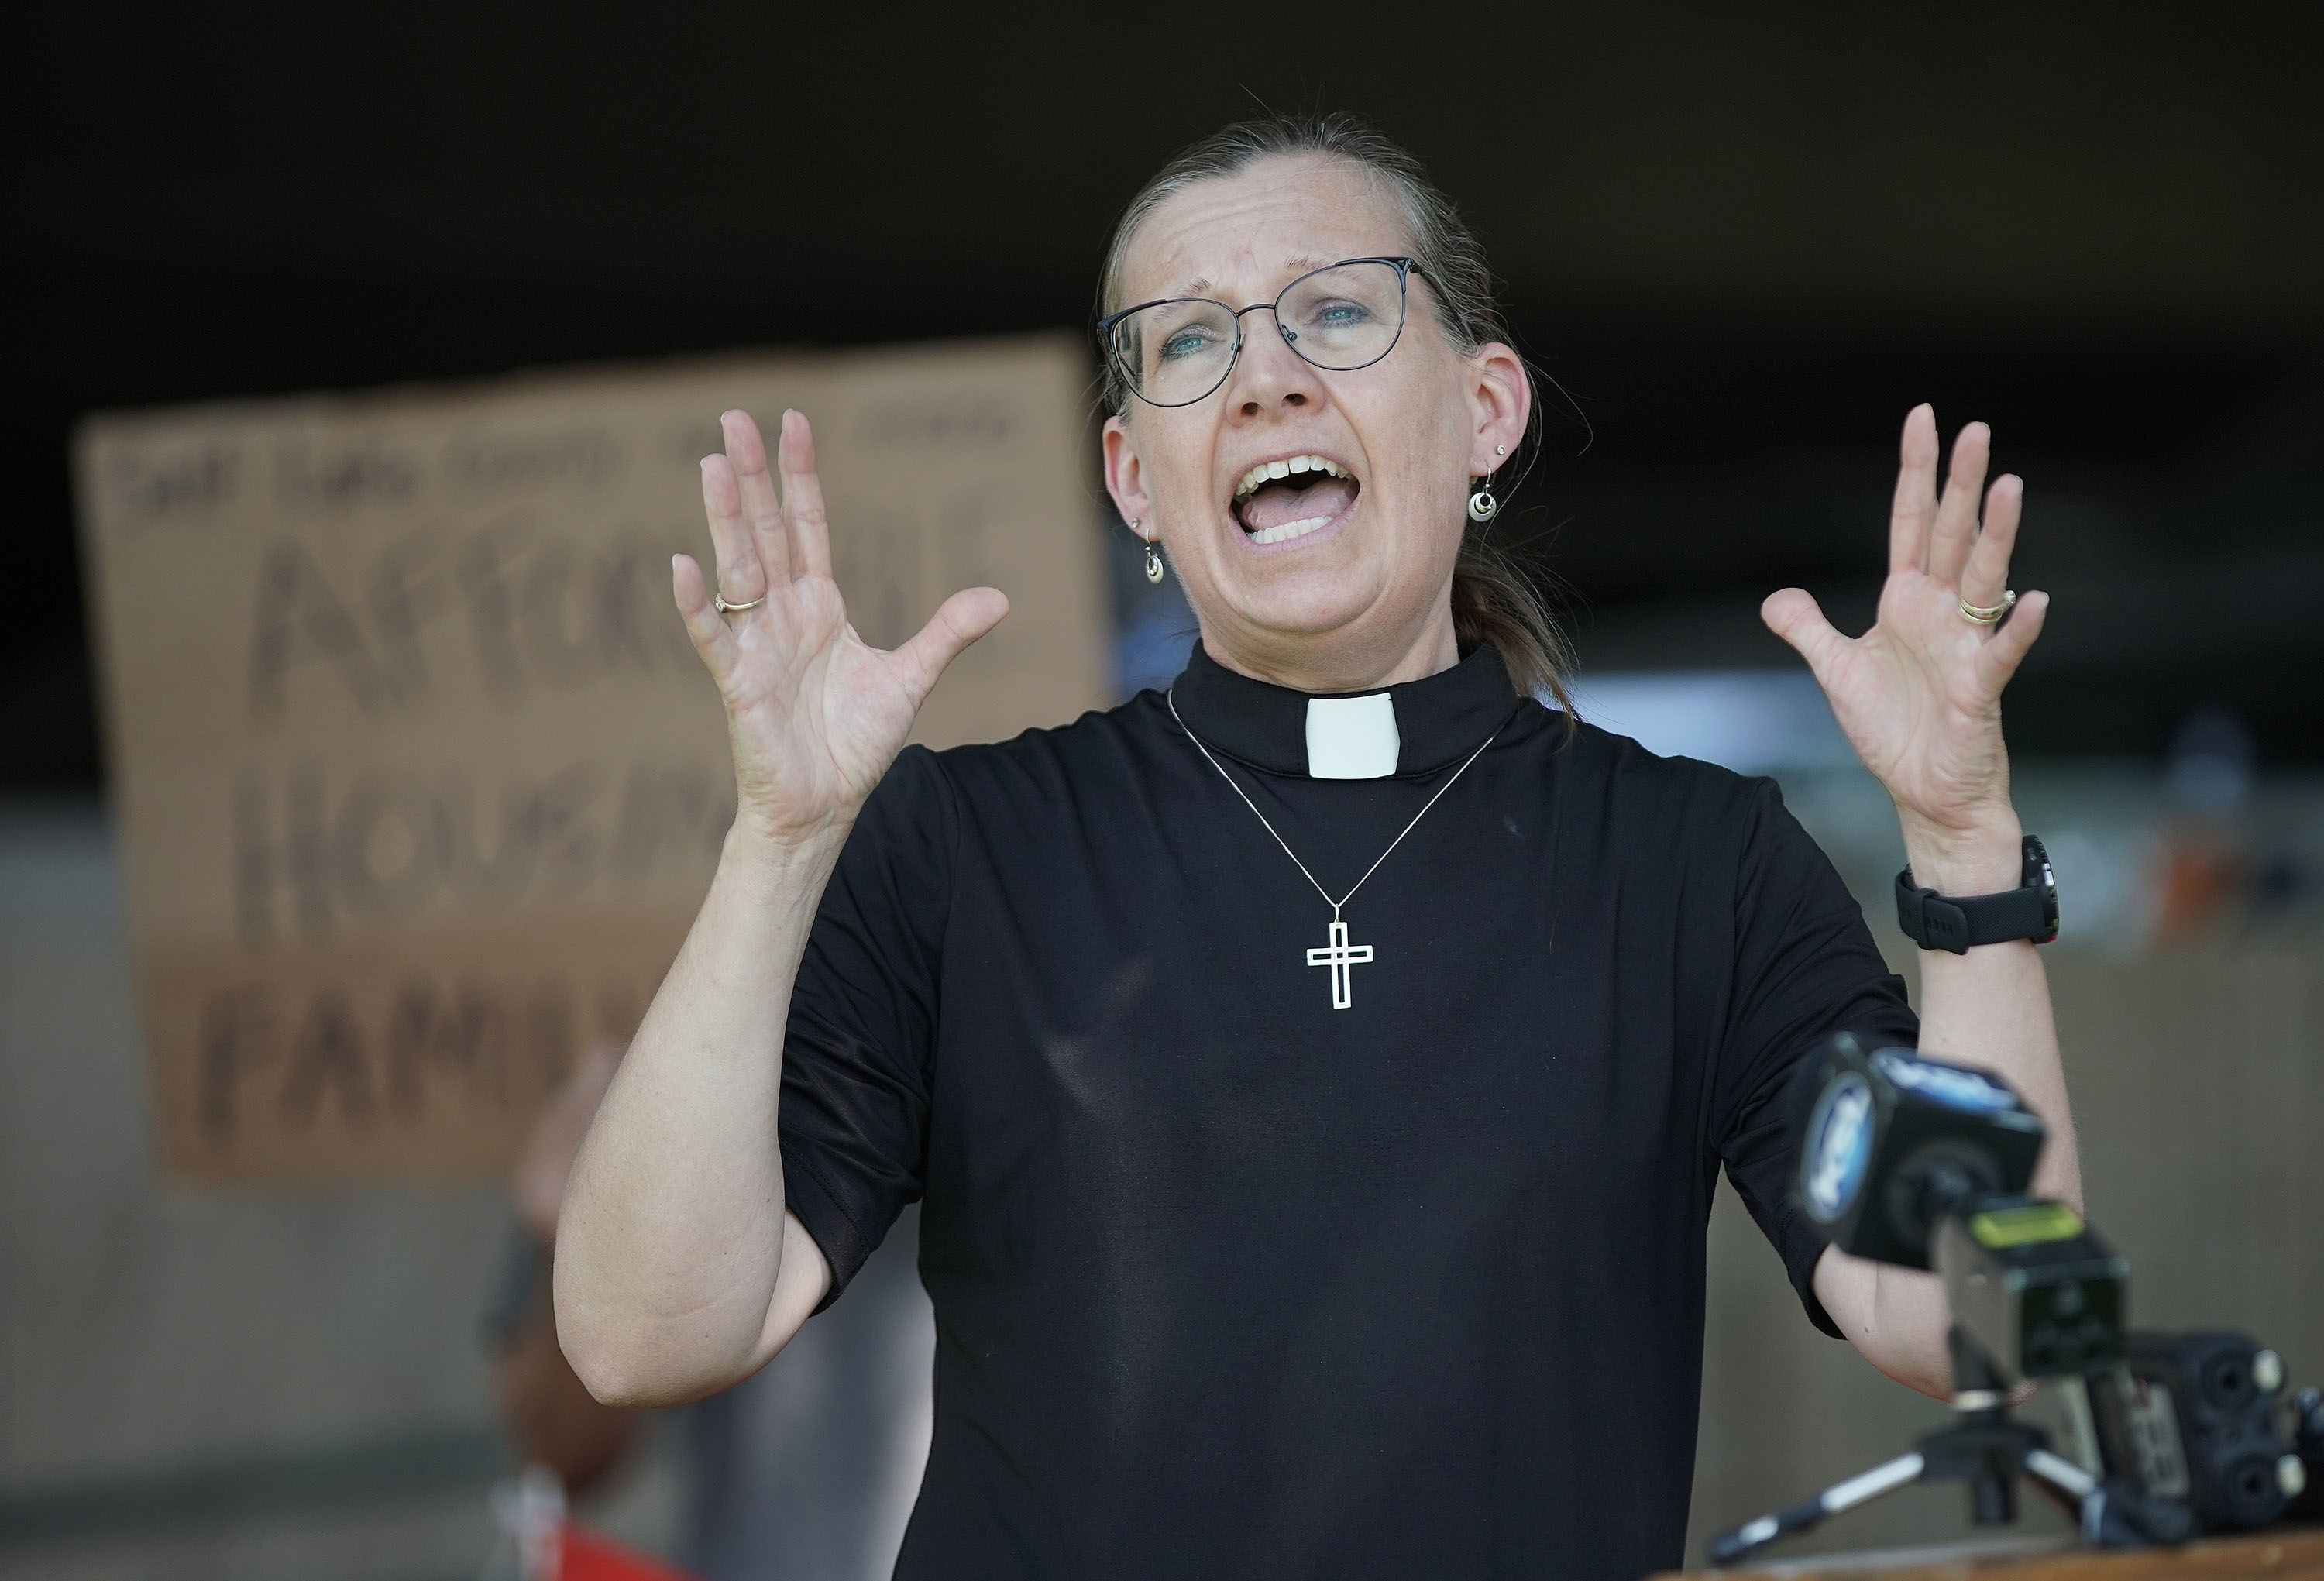 The Rev. Brigette Weier, of Our Saviour's Lutheran Church, speaks as faith leaders urge Salt Lake County government officials to use federal funds for housing to reduce homelessness for families, people with disabilities and senior citizens in Salt Lake City on Thursday, July 8, 2021.